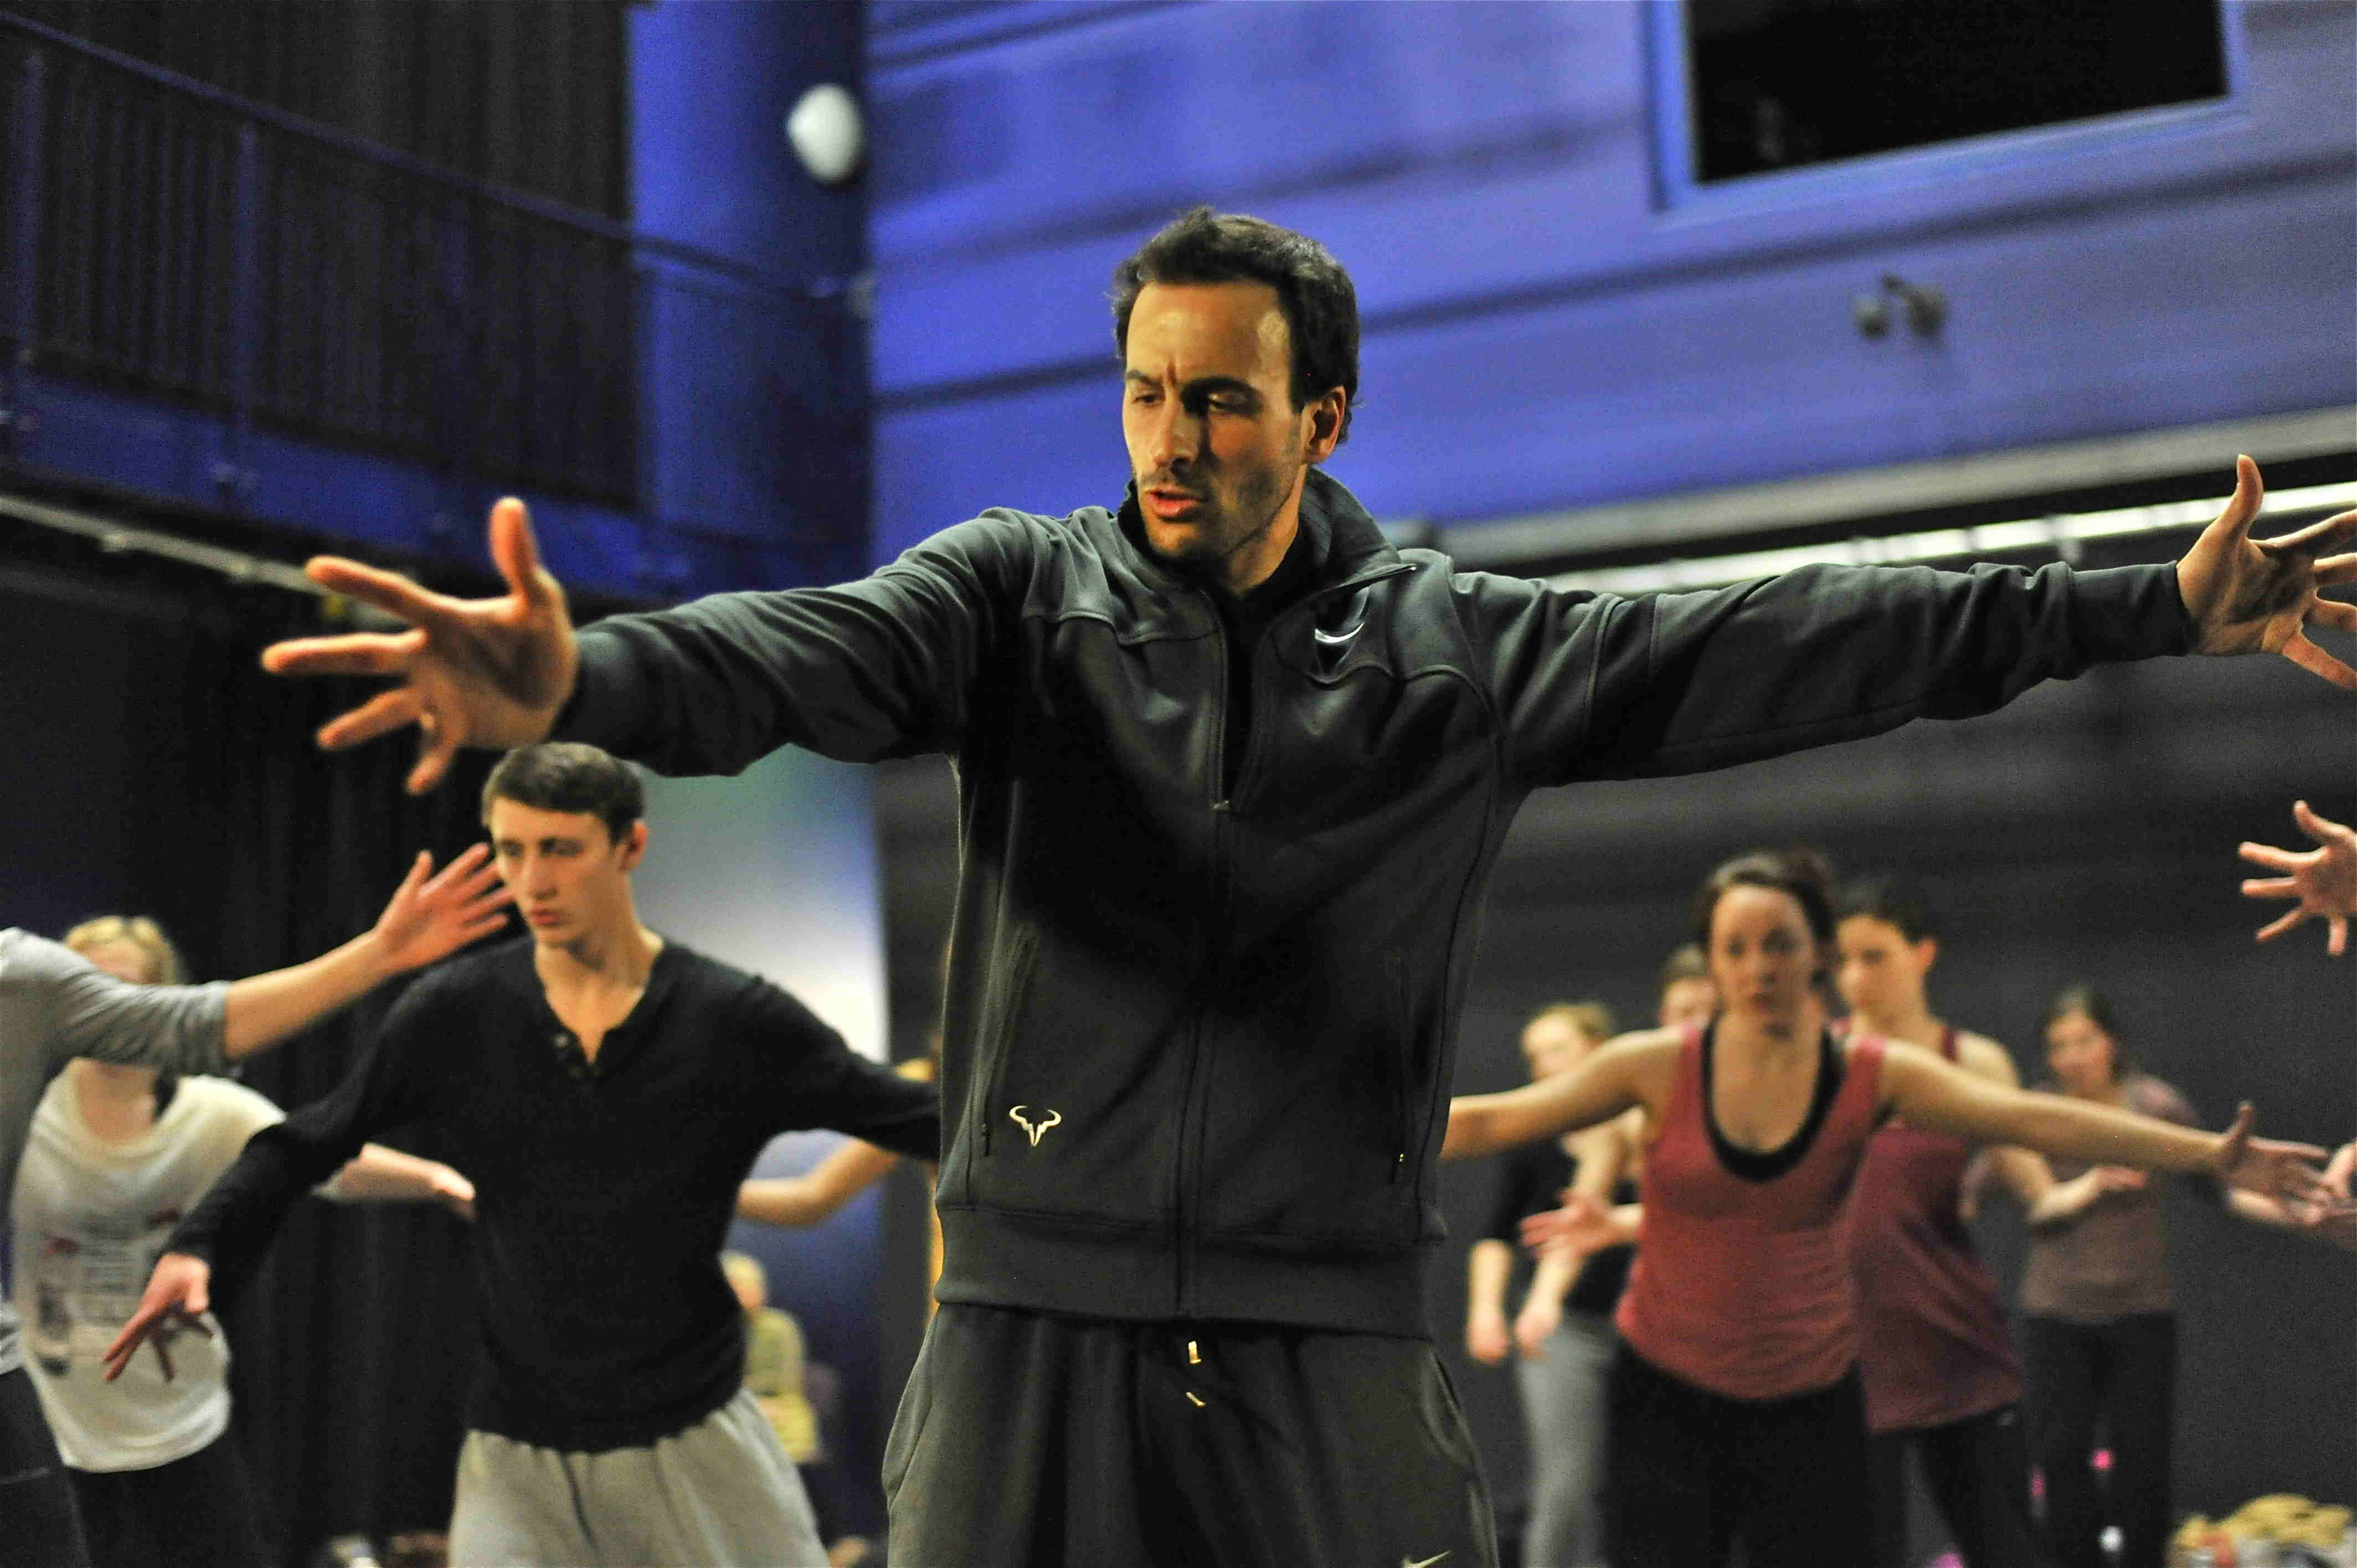 Hofesh Shechter does dance outreach work with young people